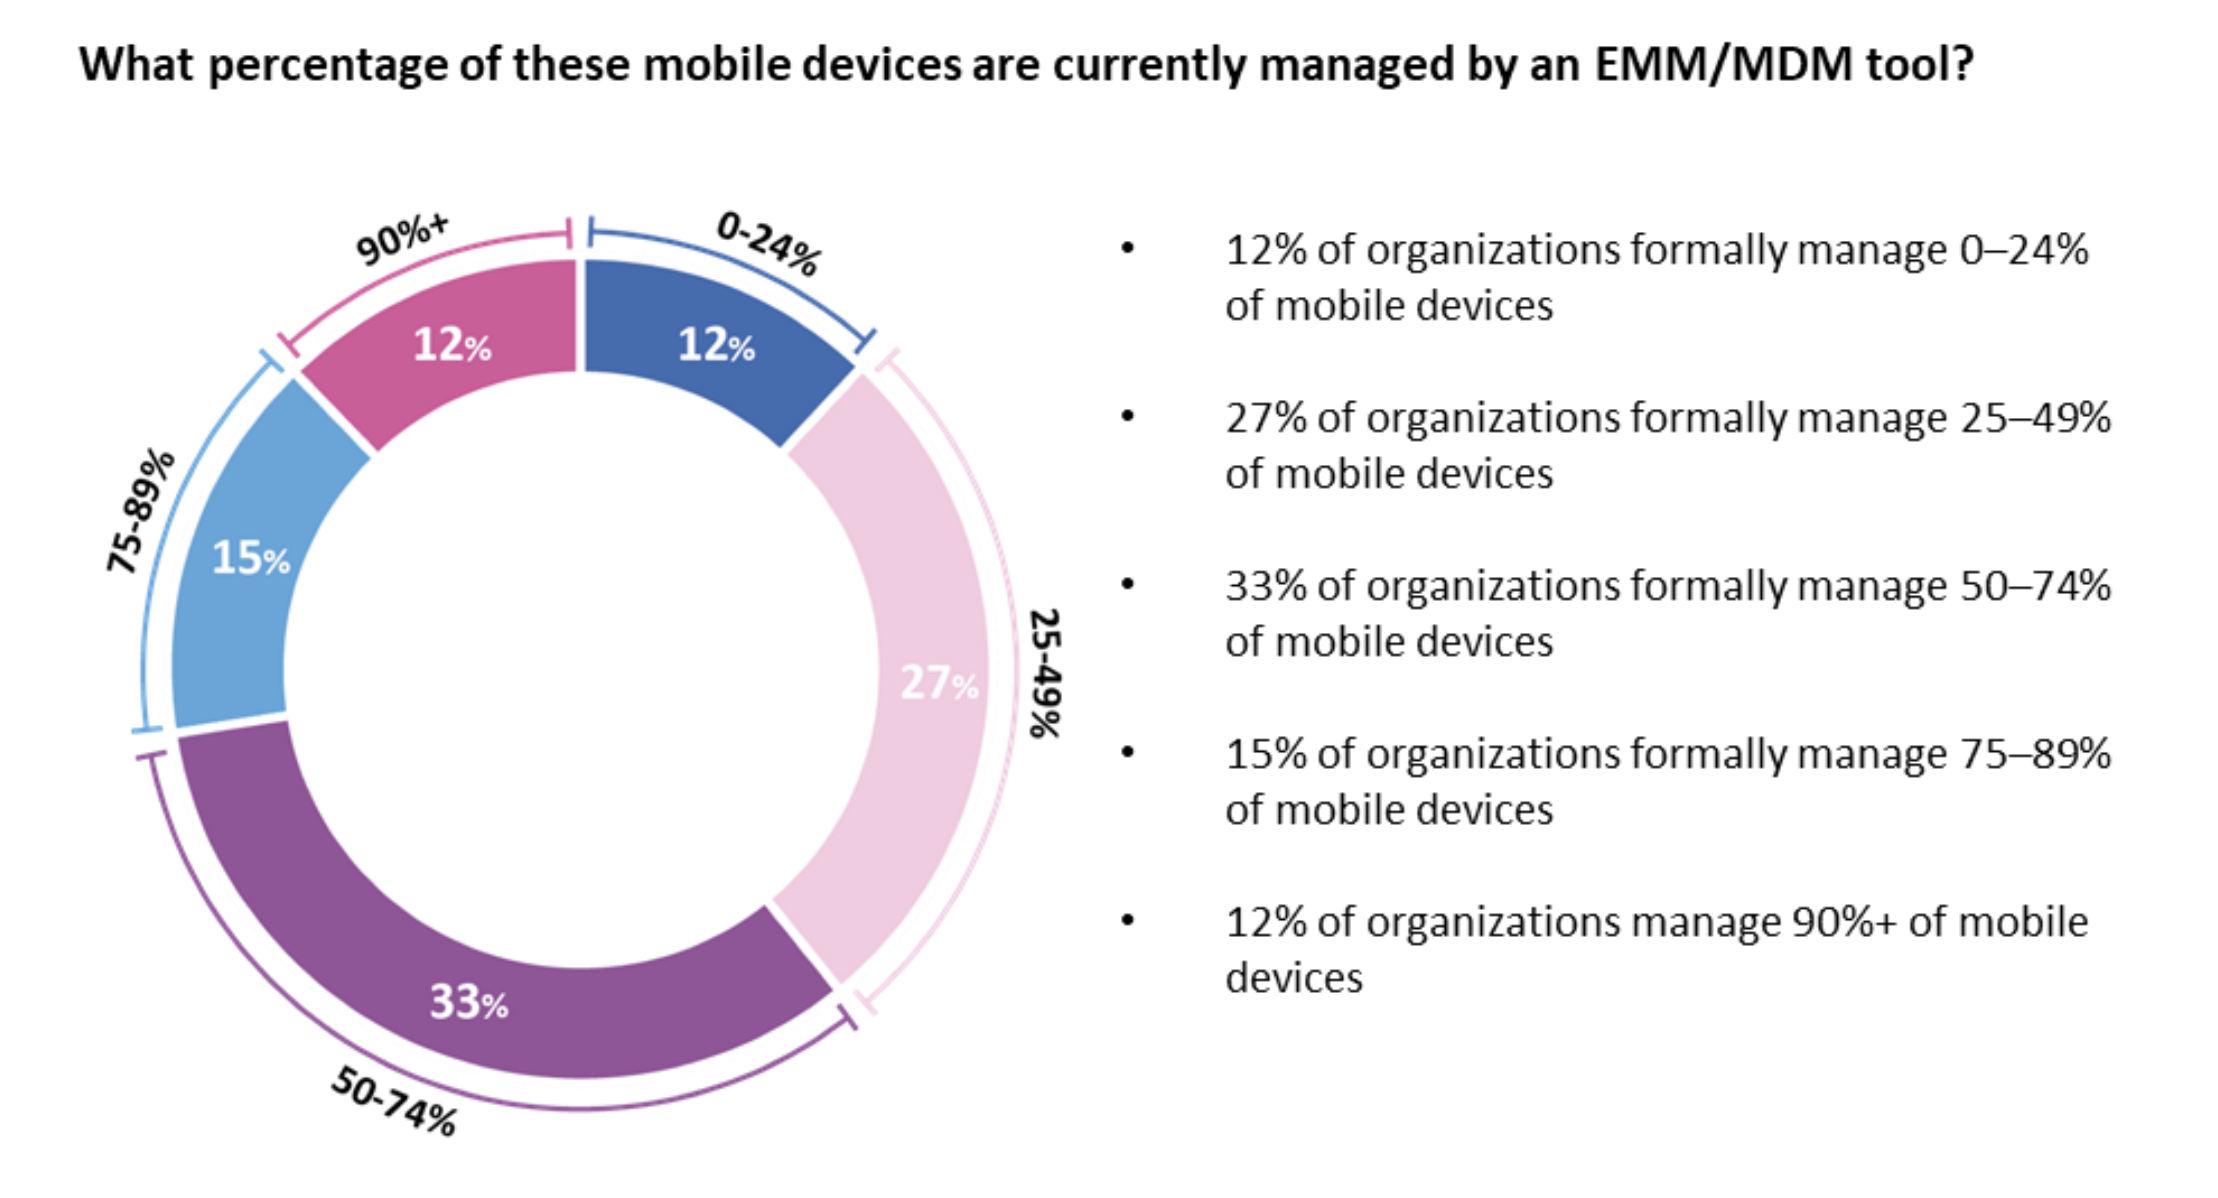 Mobile device management trends